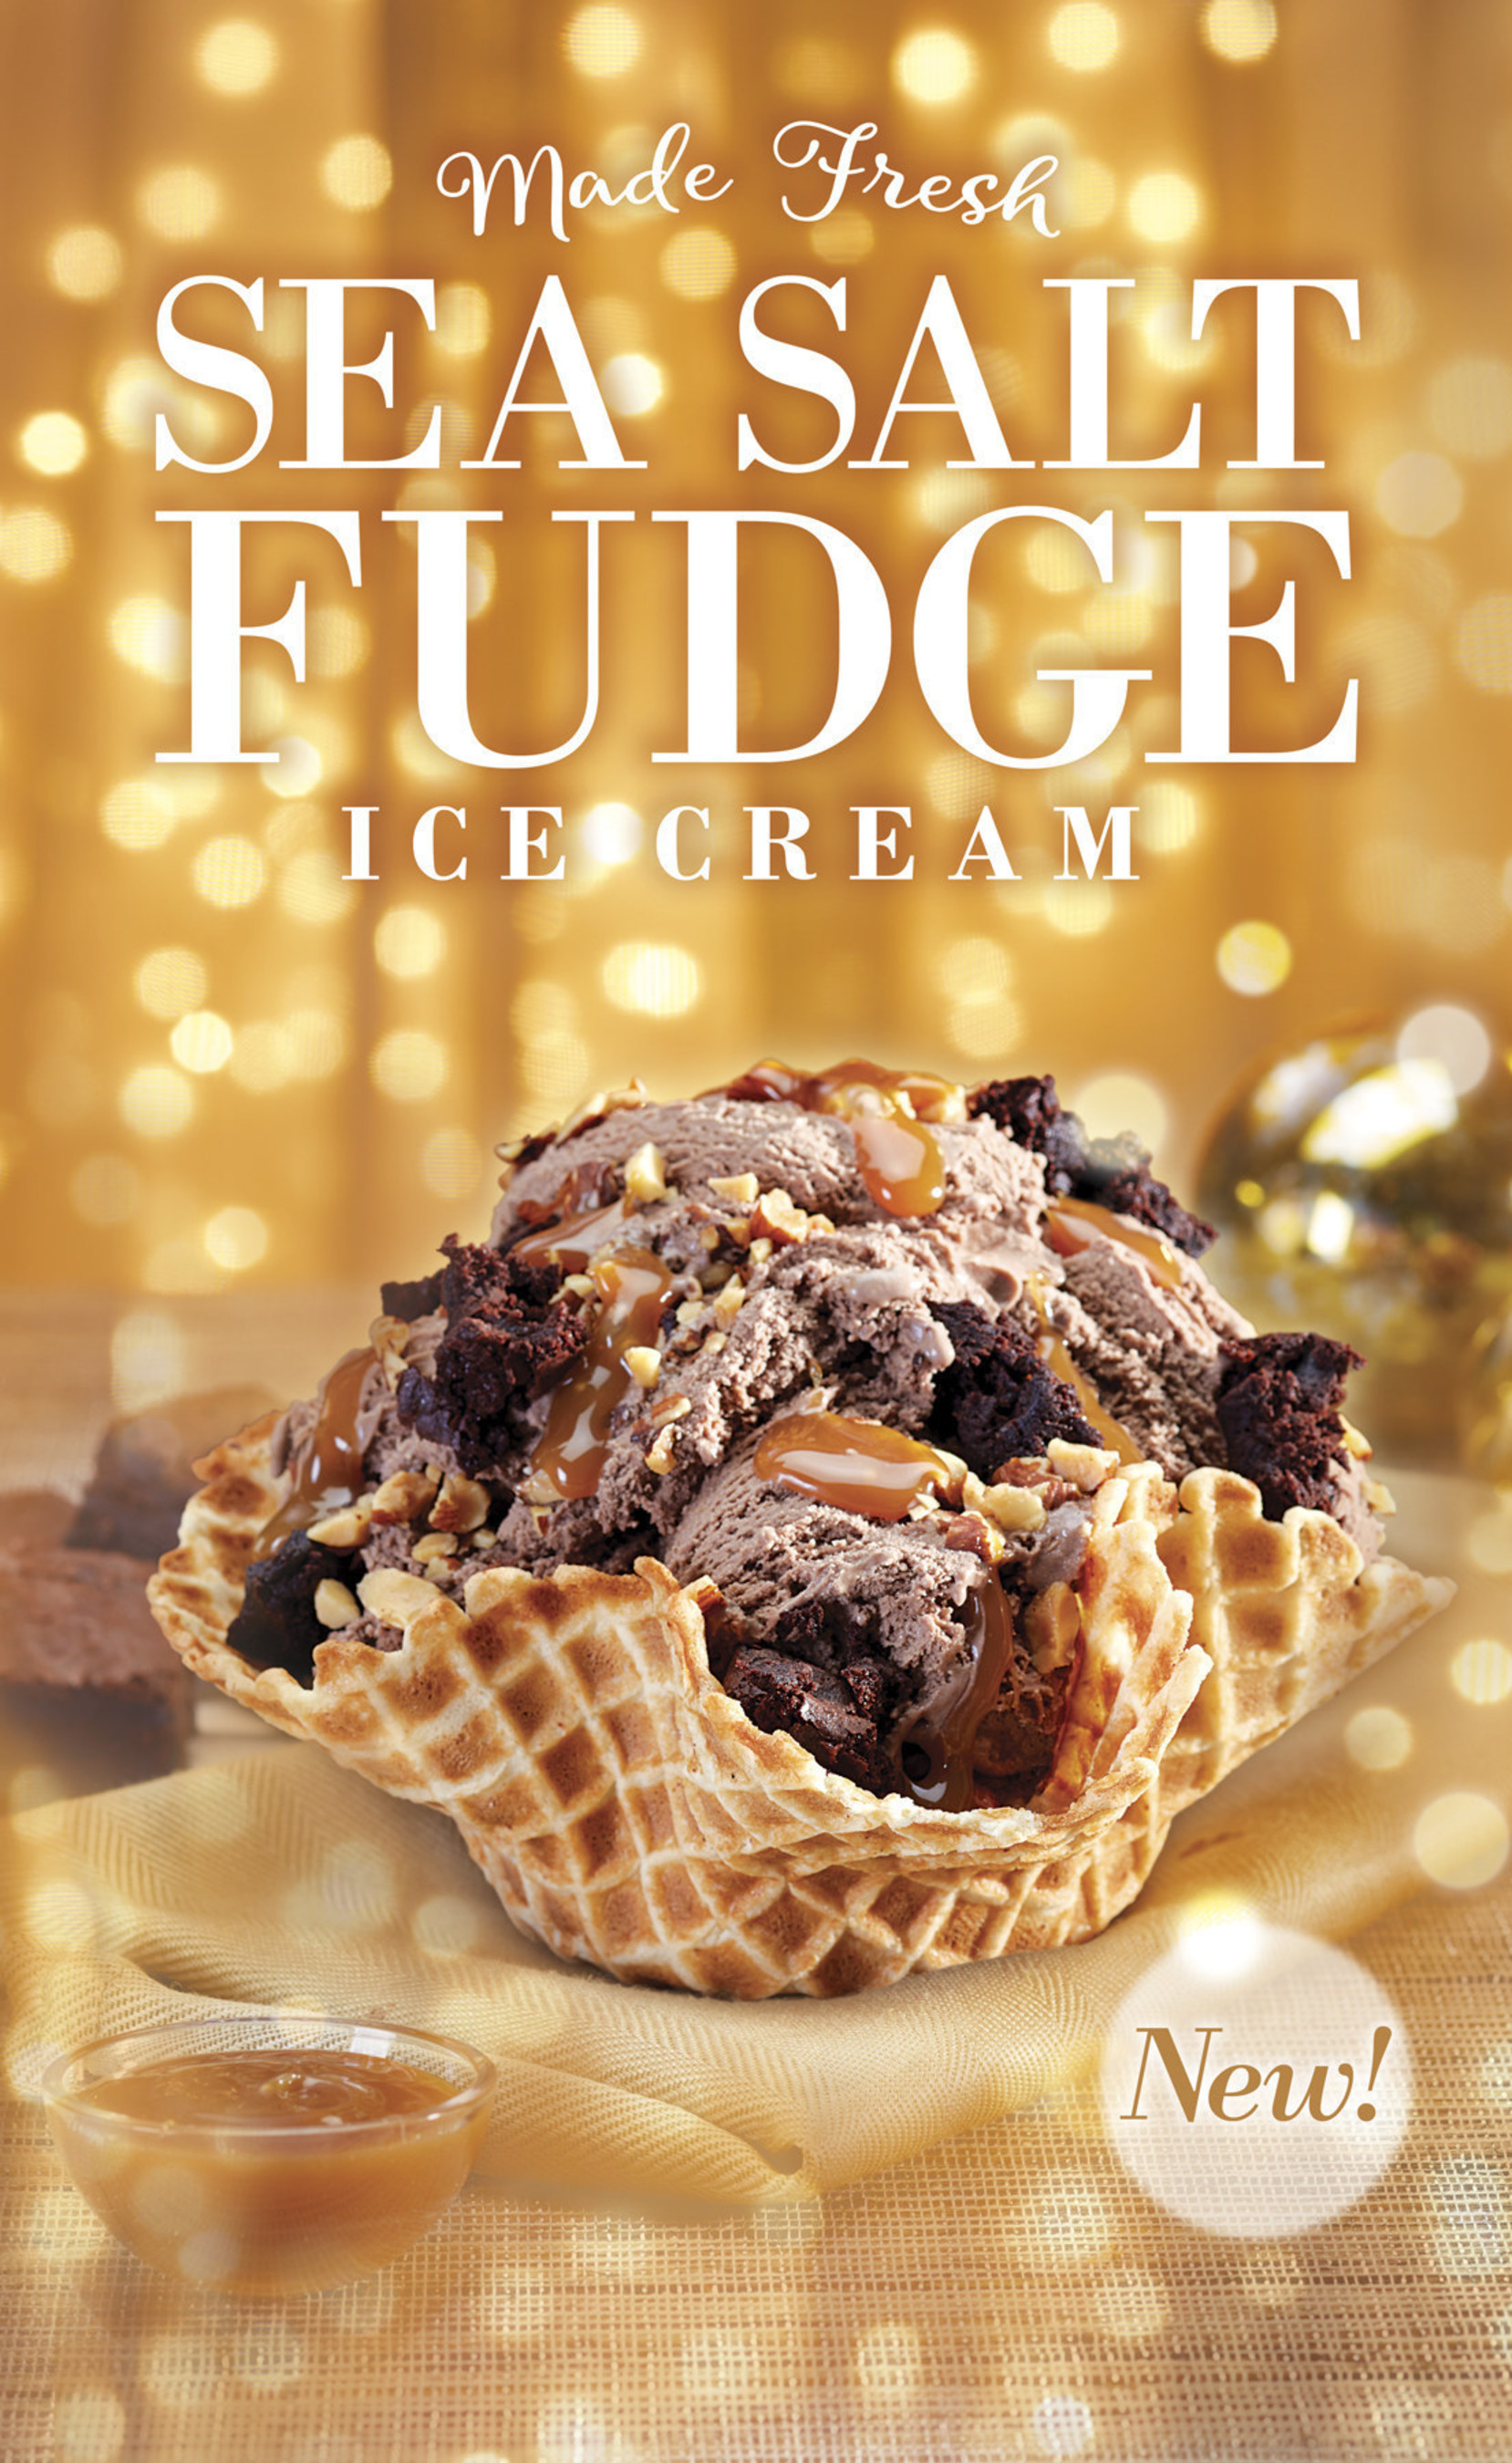 Cold Stone Creamery Sea Salt Fudge Creation available for a limited time.